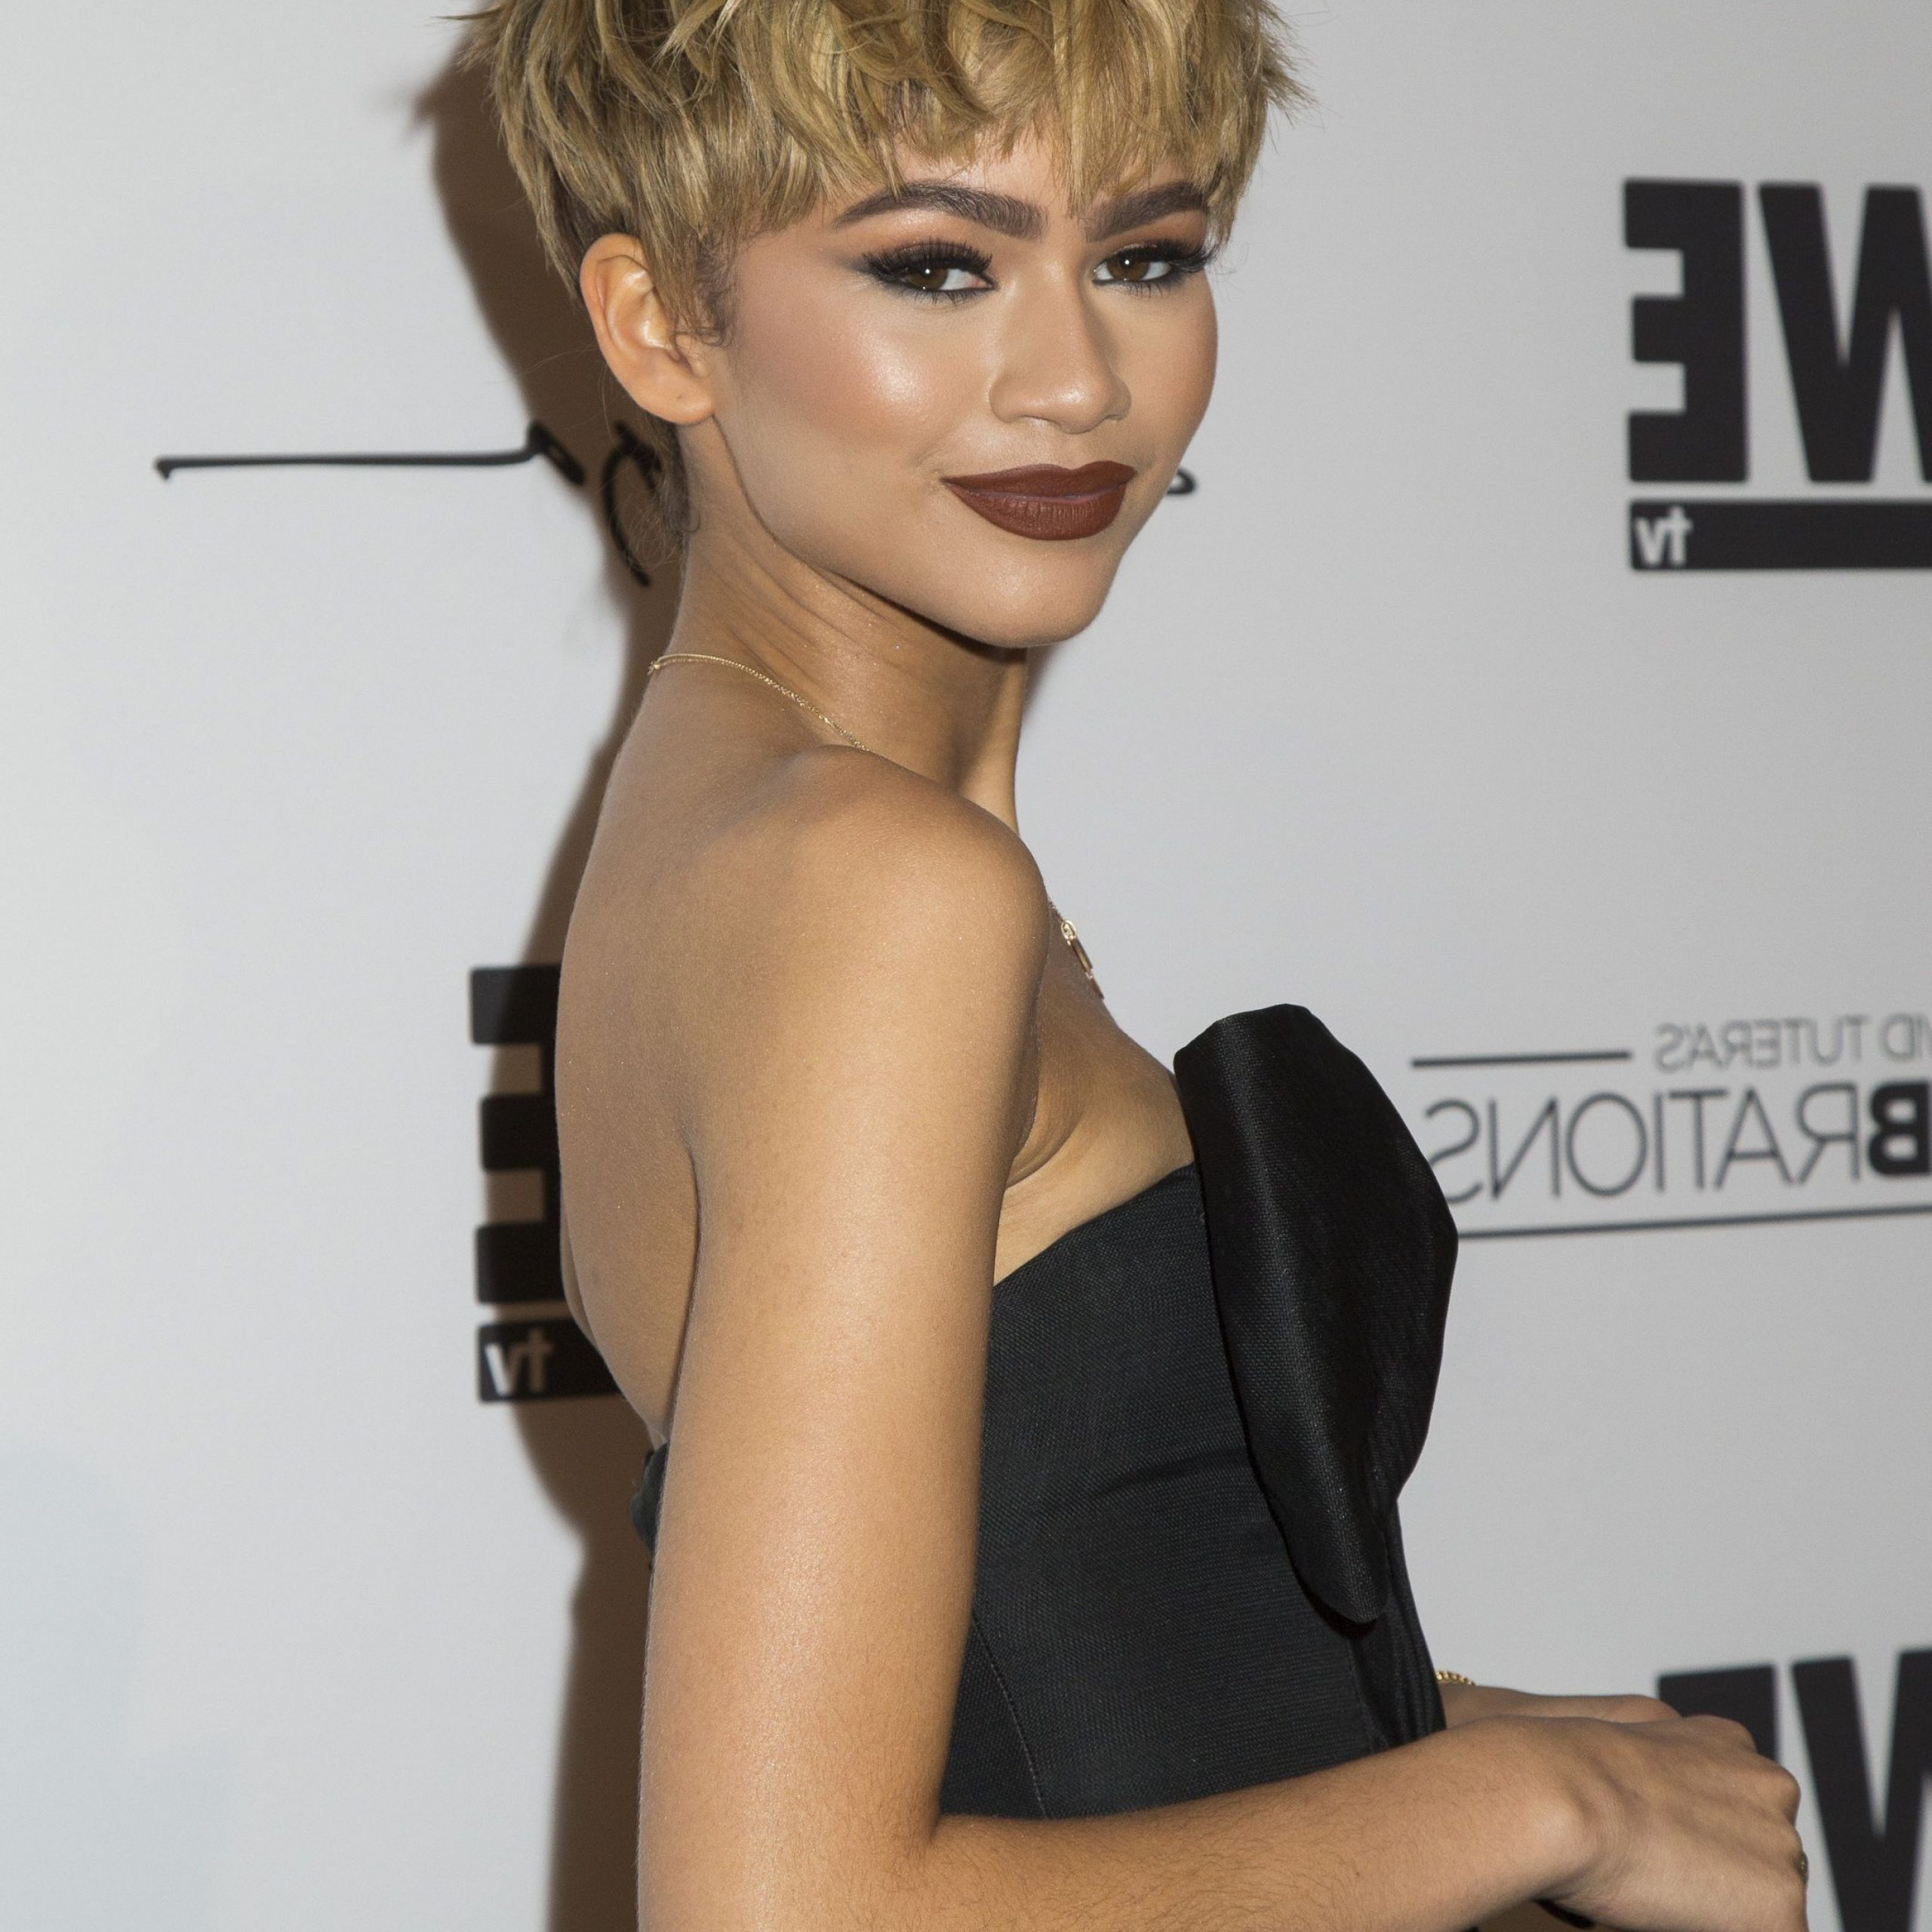 70 Best Pixie Cut Hairstyle Ideas 2019 – Cute Celebrity With Regard To Messy Curly Blonde Pixie Bob Haircuts (View 17 of 20)